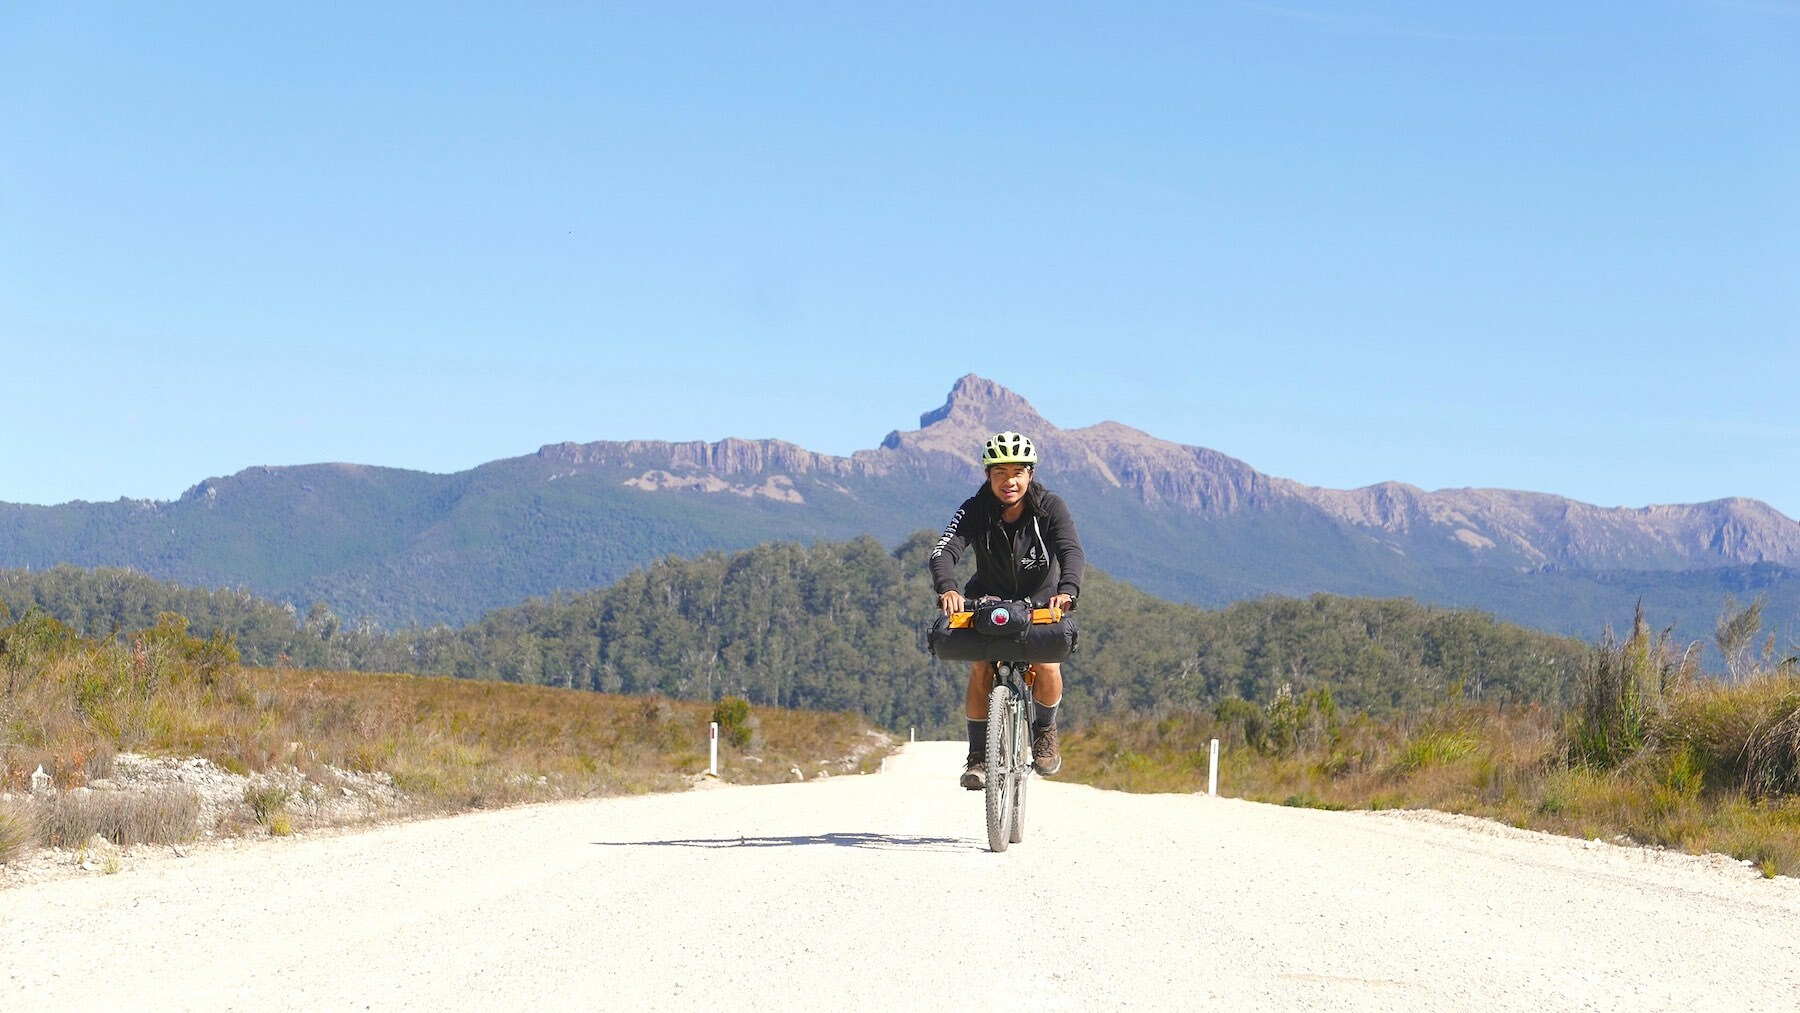 bikepacking in Western Tasmania with the Western Arthur Mountain Range behind